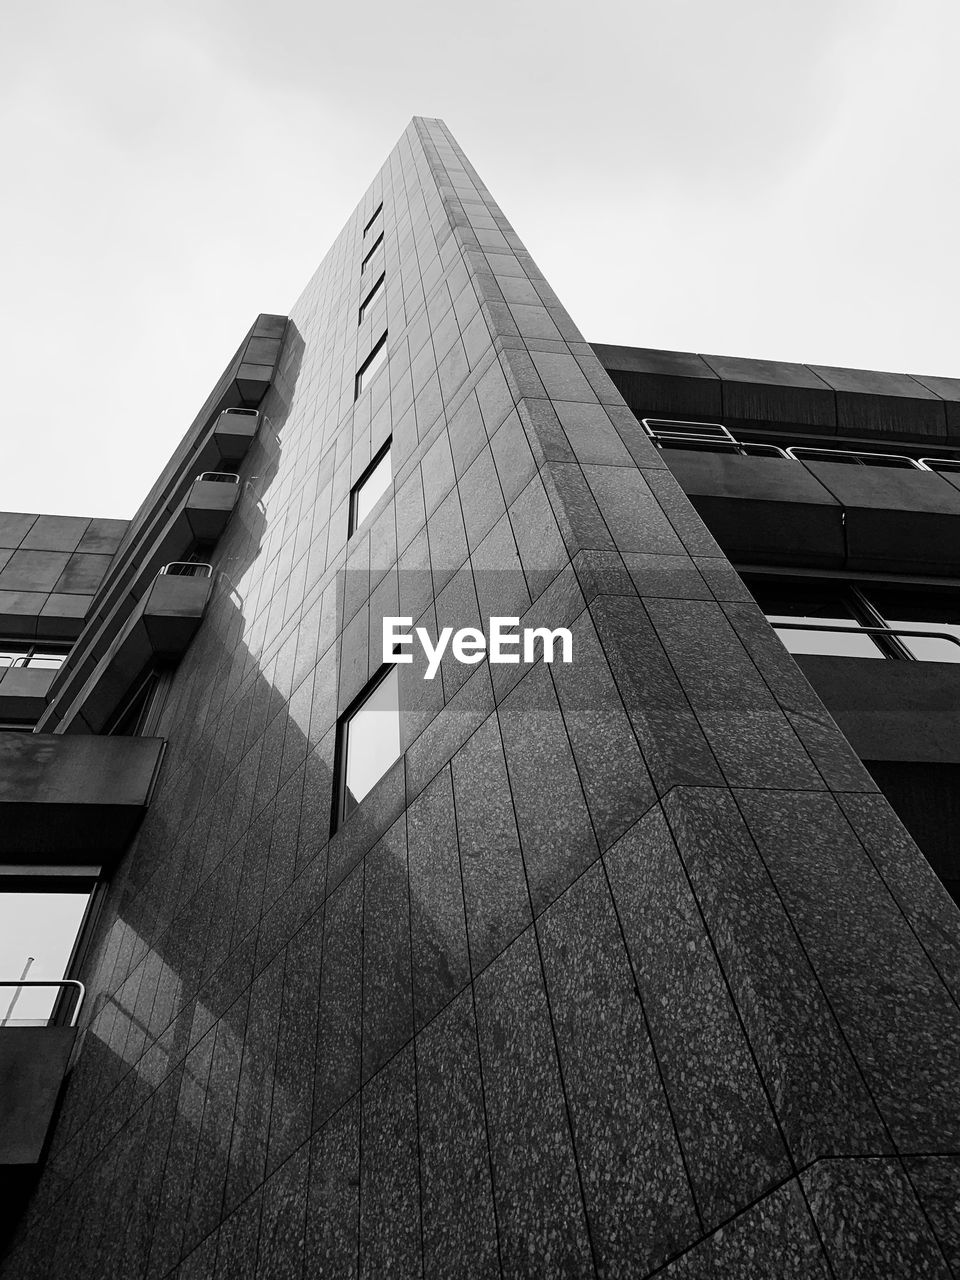 built structure, architecture, building exterior, low angle view, sky, building, city, no people, nature, day, modern, clear sky, office building exterior, office, outdoors, tall - high, window, skyscraper, glass - material, pattern, height